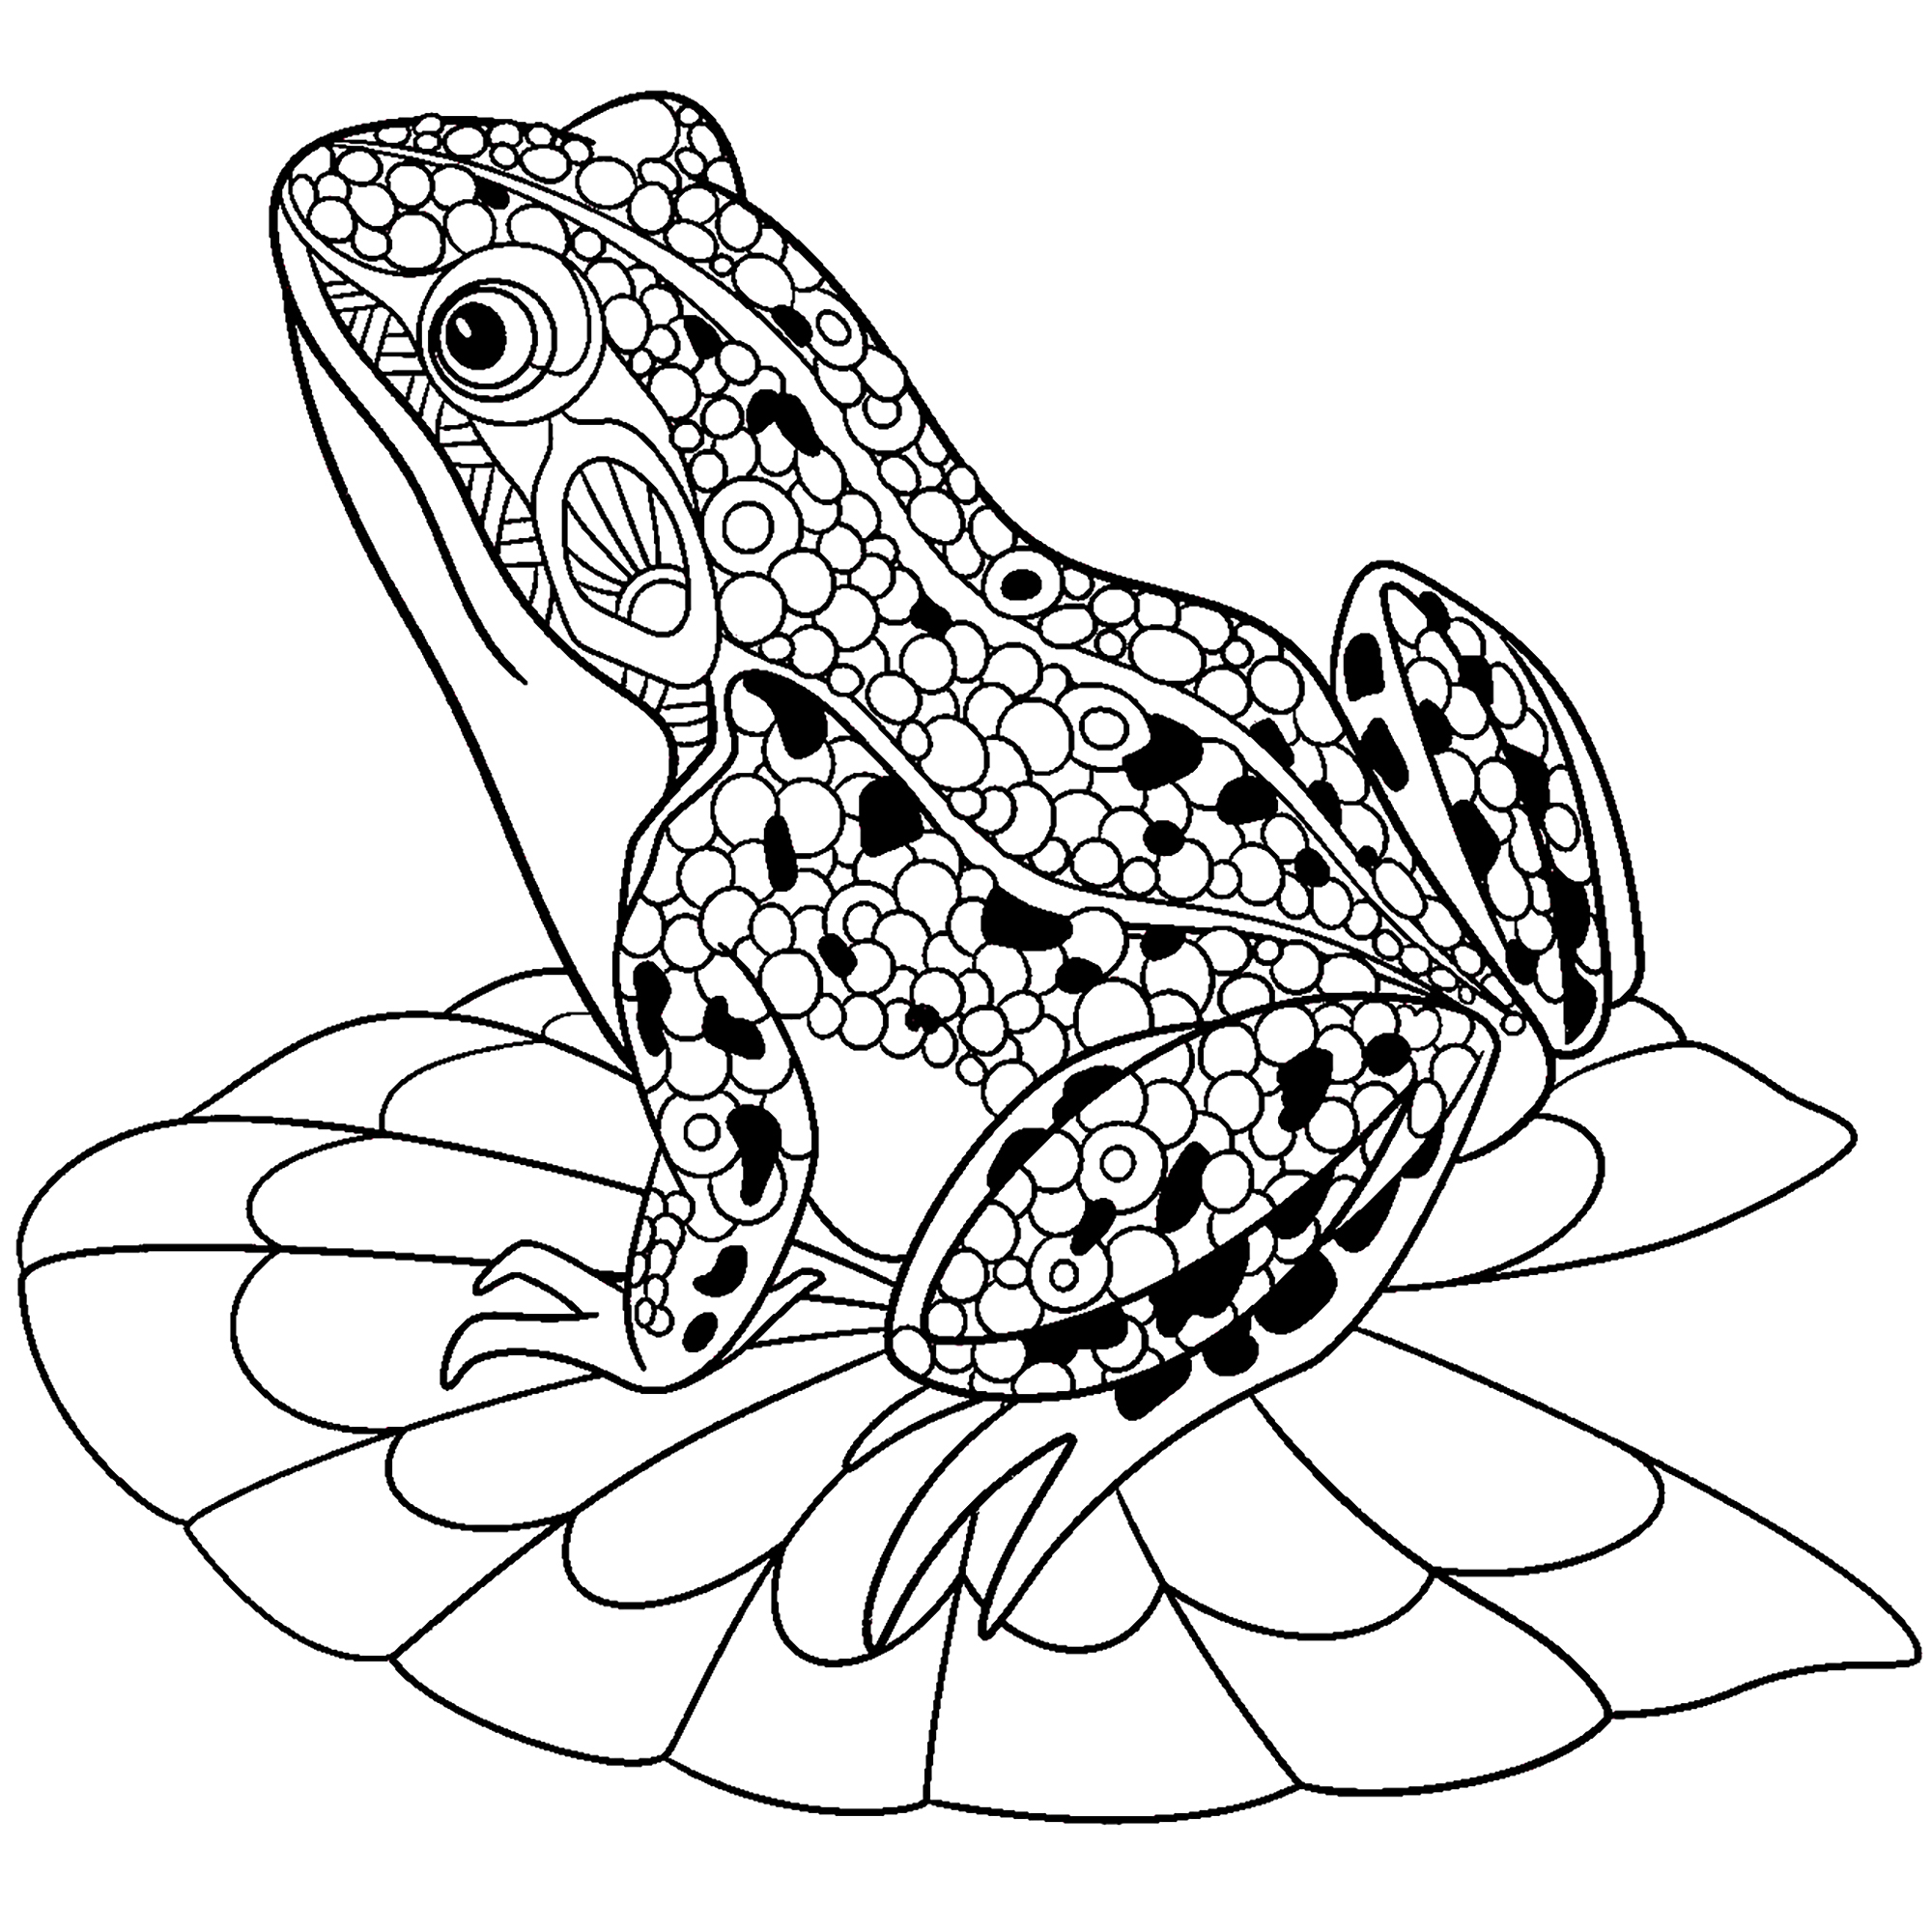 Frog Coloring Pages For Toddlers